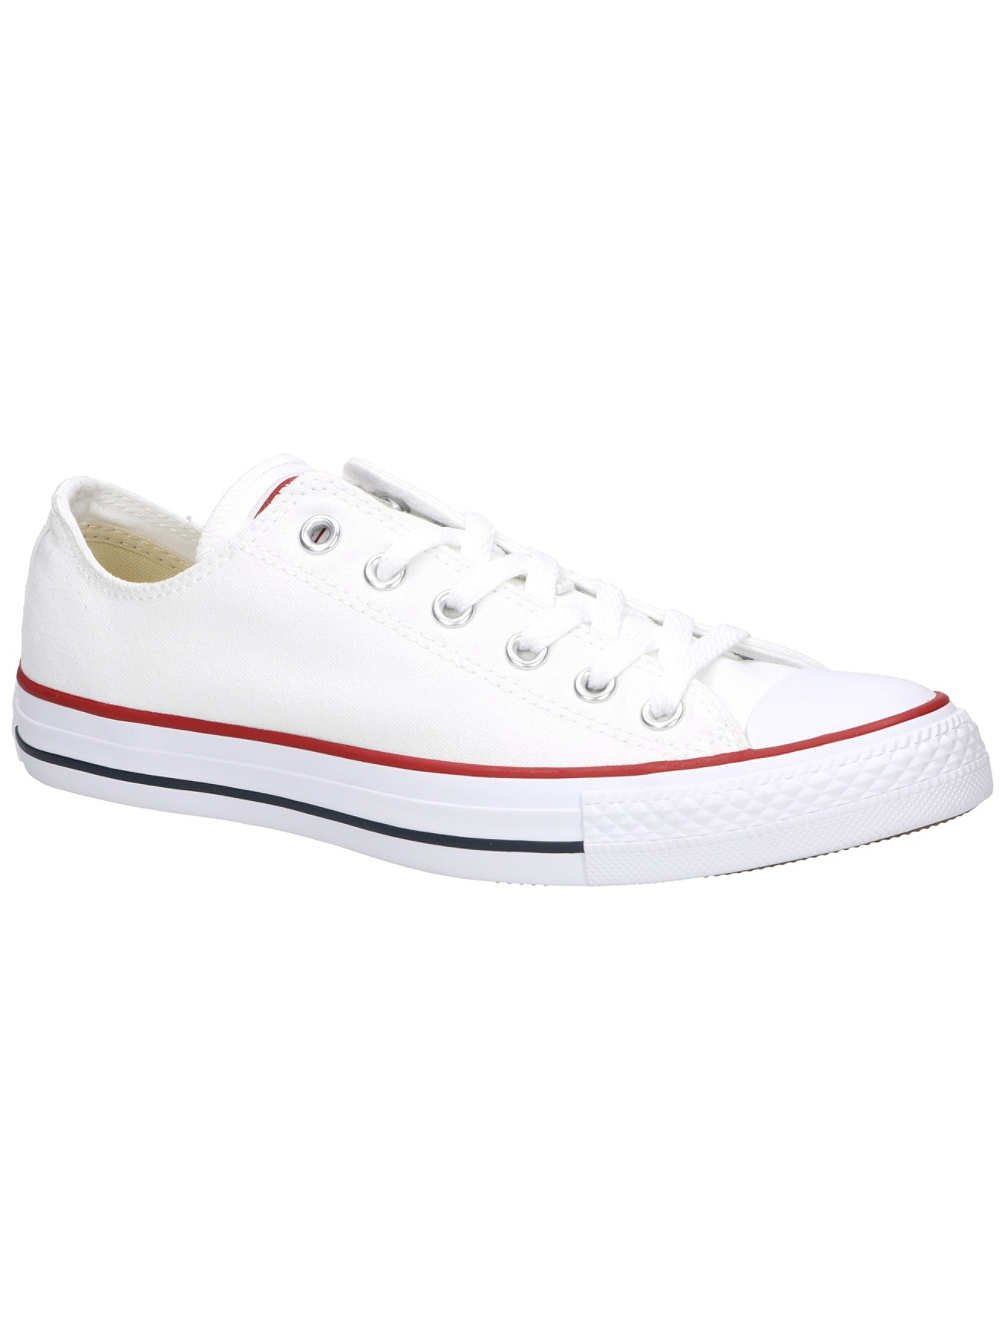 Converse Unisex Chuck Taylor All Star Ox Low Top Optical White Sneakers - 12 D (M) Optical white